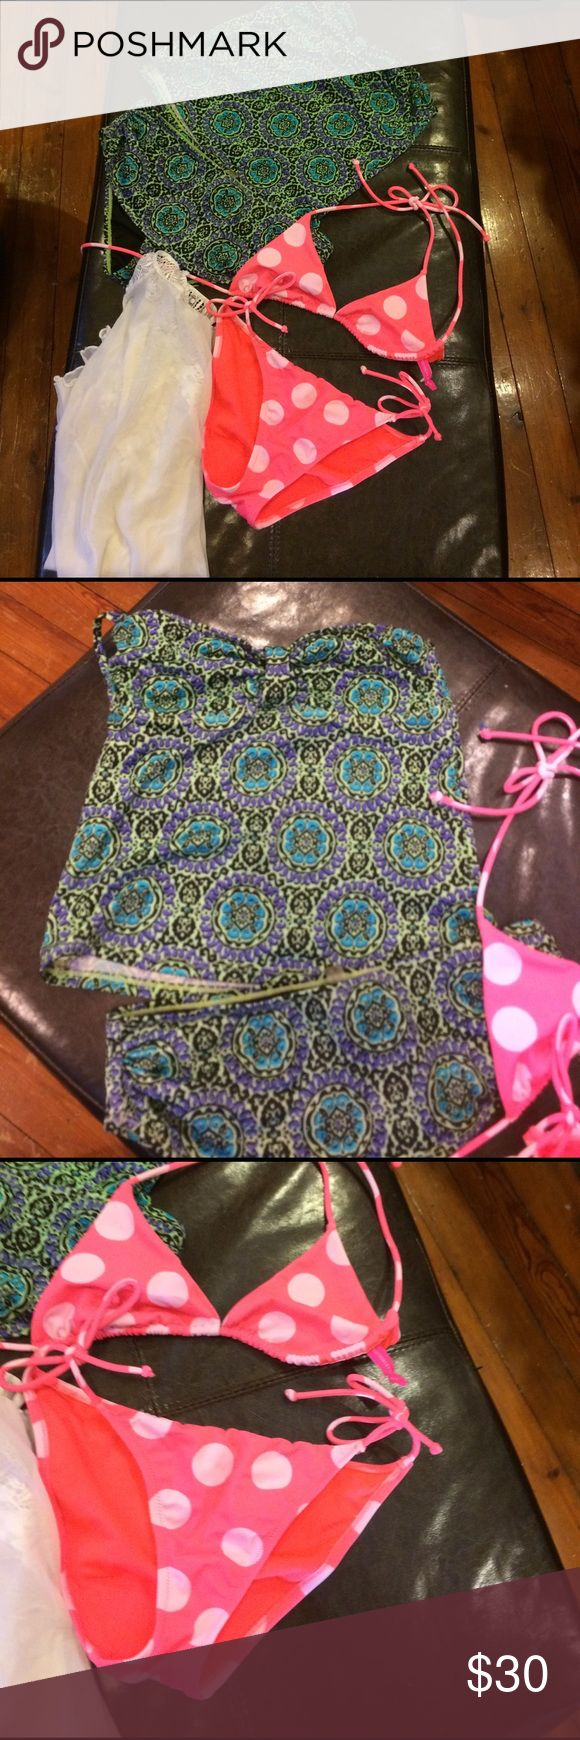 Victoria's secret beach ready Lot size small. 2 size small Victorias secret swim suits. EUC. The tankini is missing a strap my daughter wore it strapless & we have yet to find the other strap yet. The sheer white top is not from Victoria secret but the Escada collection. Great little Lot to get summer ready! Smoke free home dog mom. Victoria's Secret Swim